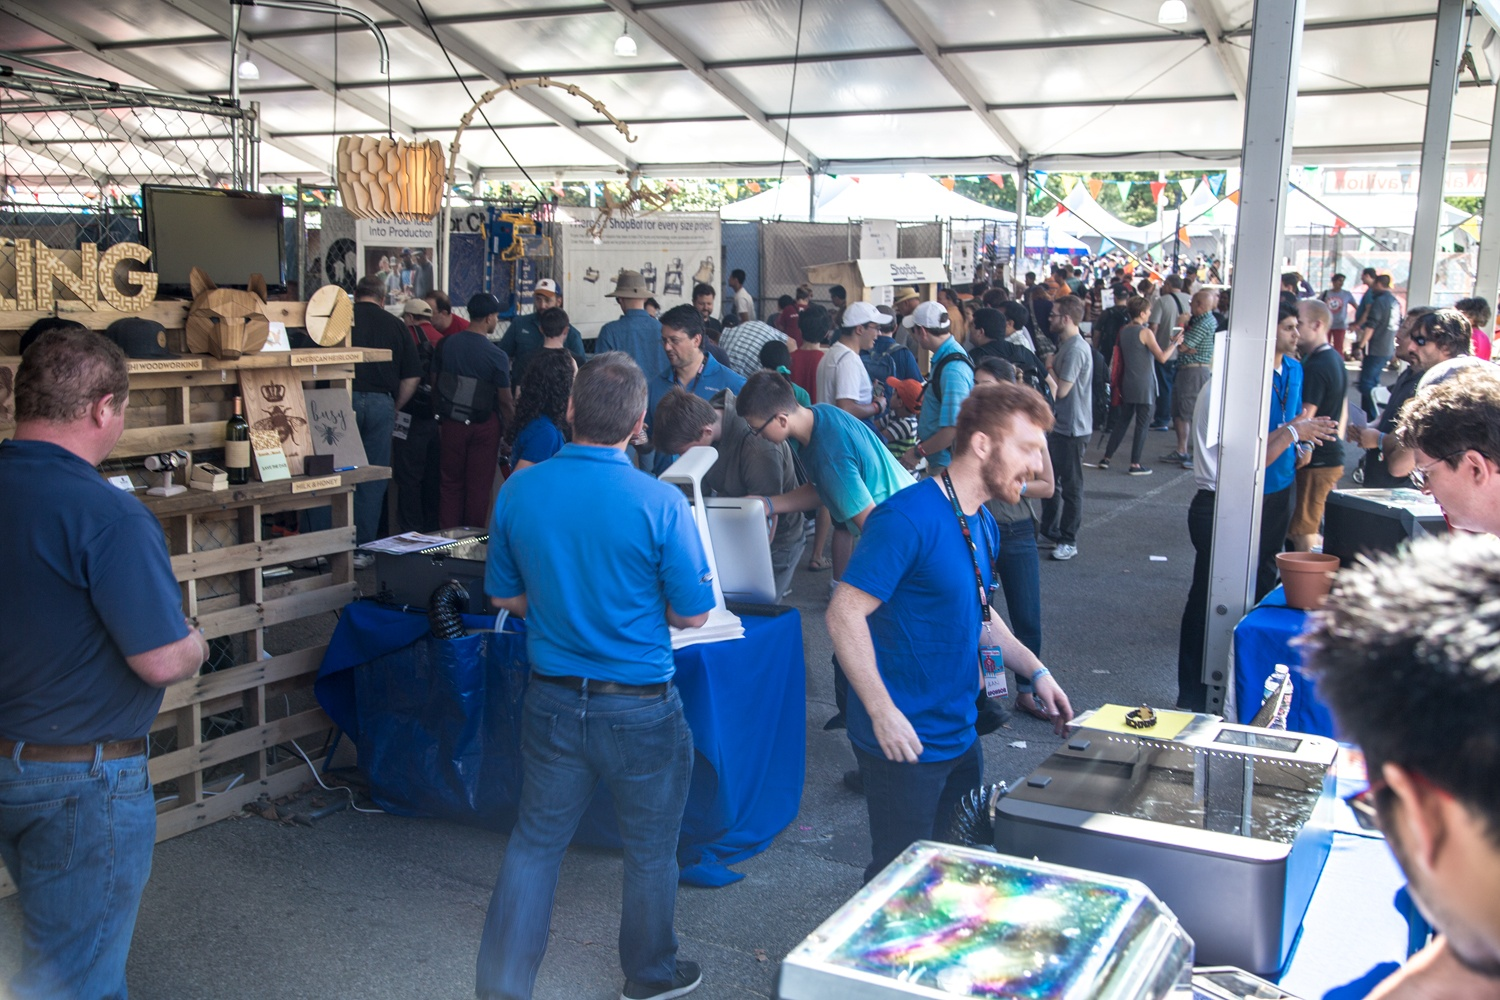 Maker_Faire_New_York_1.jpg